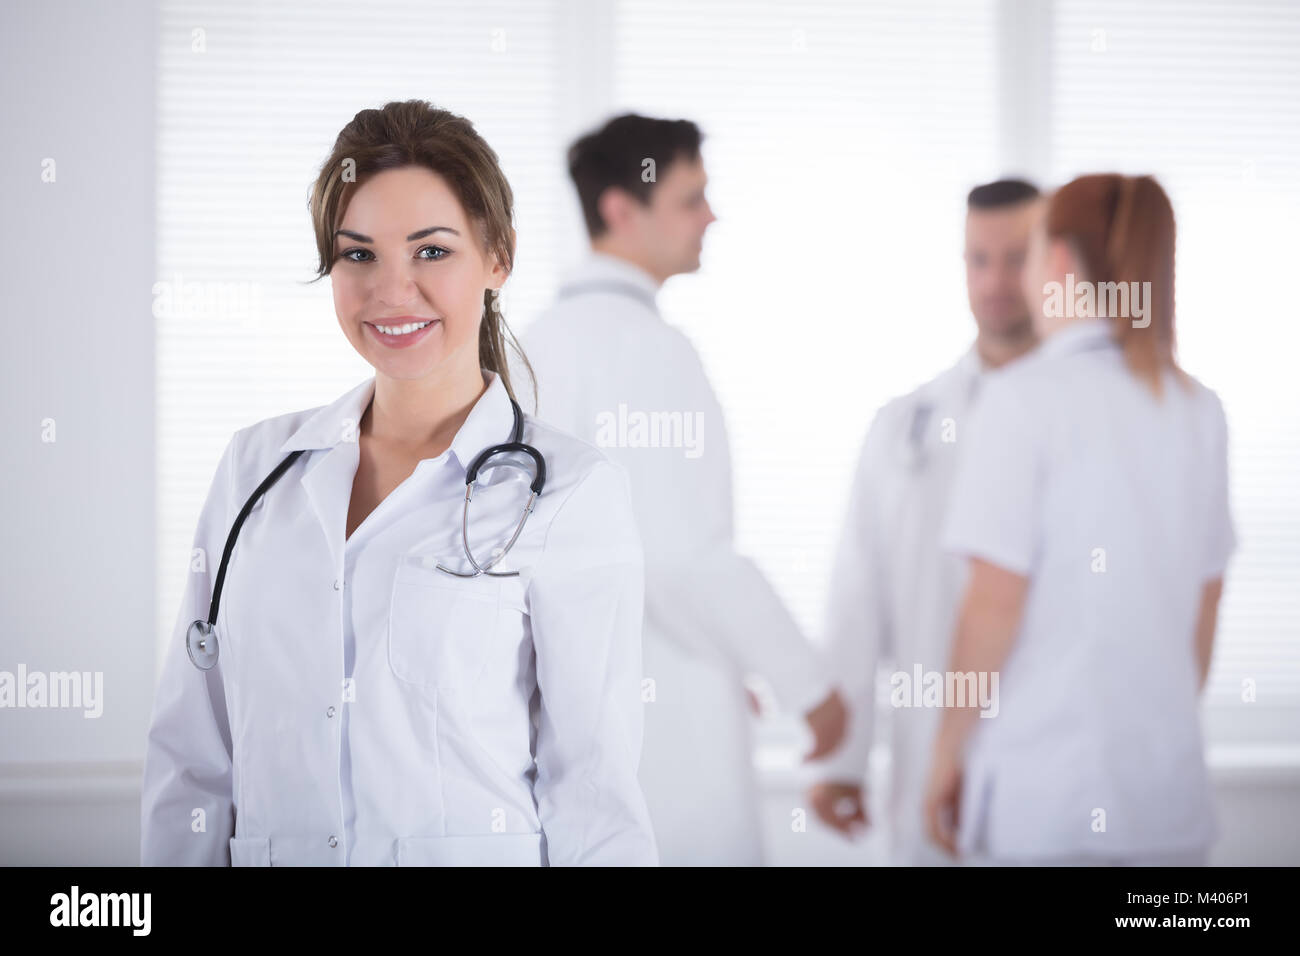 Portrait Of Young Smiling Professional Female Doctor With Stethoscope - Stock Image